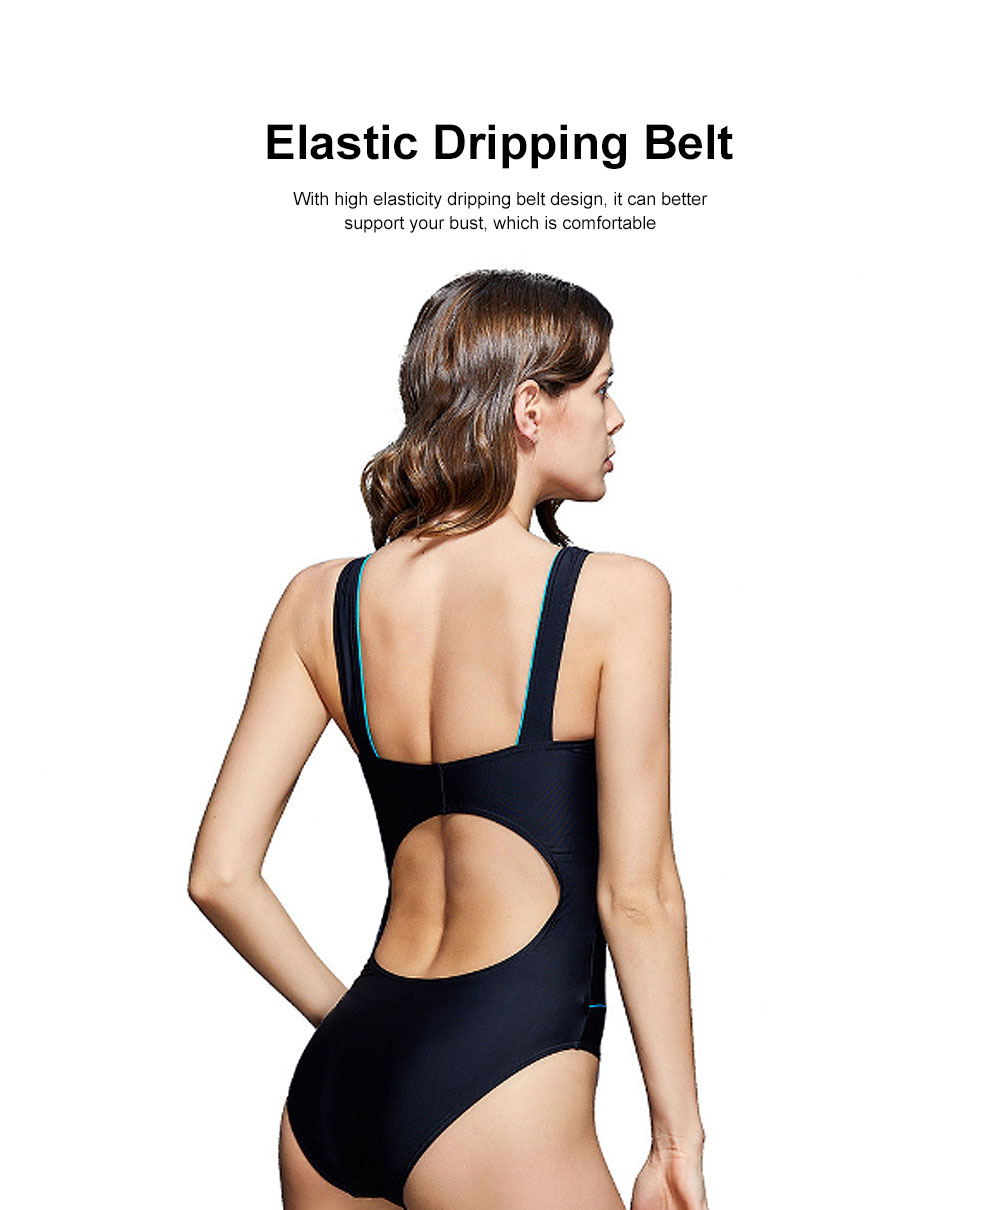 Professional Sport Swimsuit Minimalist Stylish Three Colors Joint Quick-dry Bikini with Elastic Dripping Belt 1